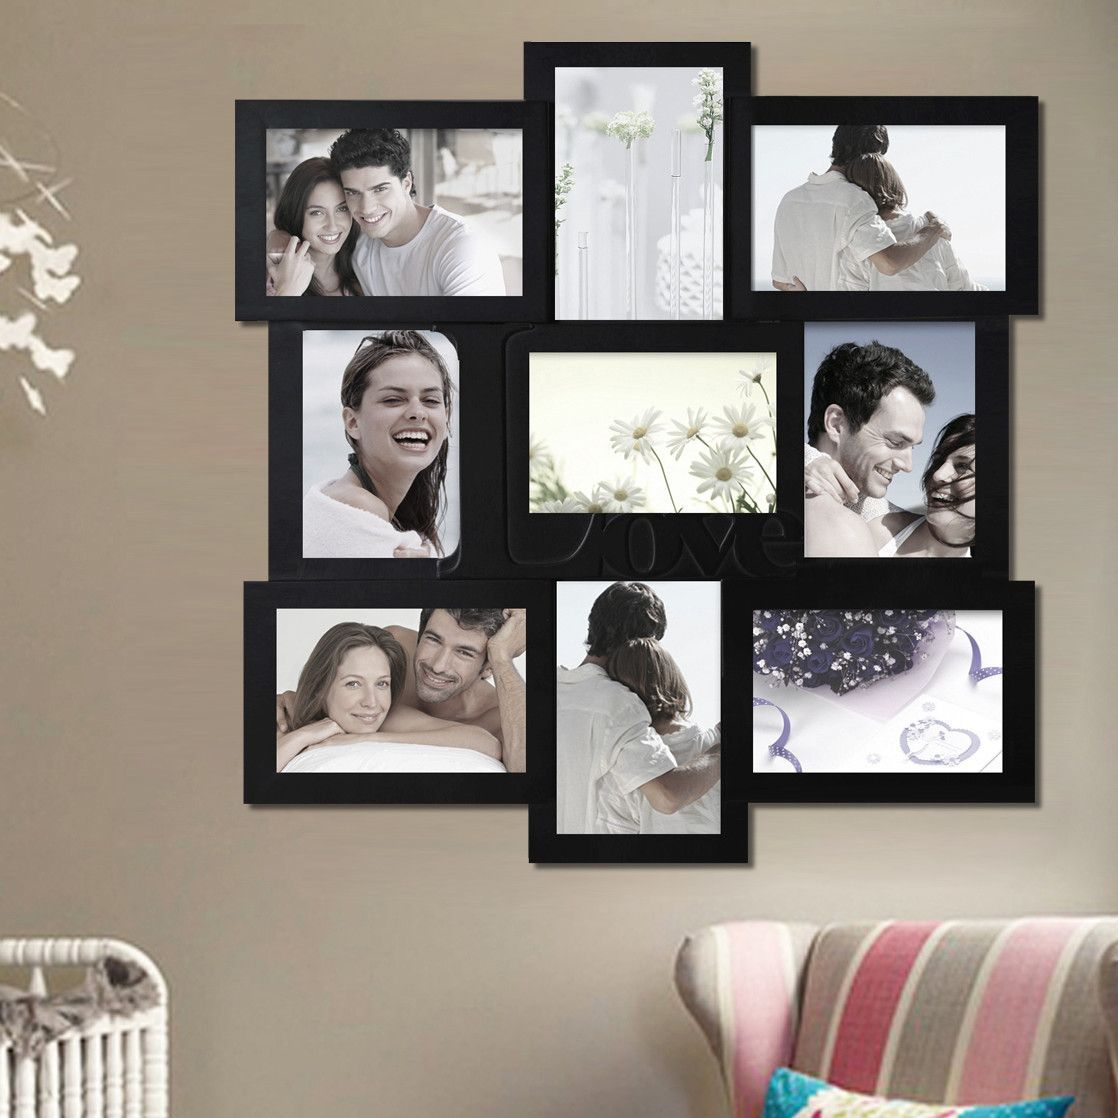 9 opening decorative love wall hanging collage picture frame 9 opening decorative love wall hanging collage picture frame jeuxipadfo Images